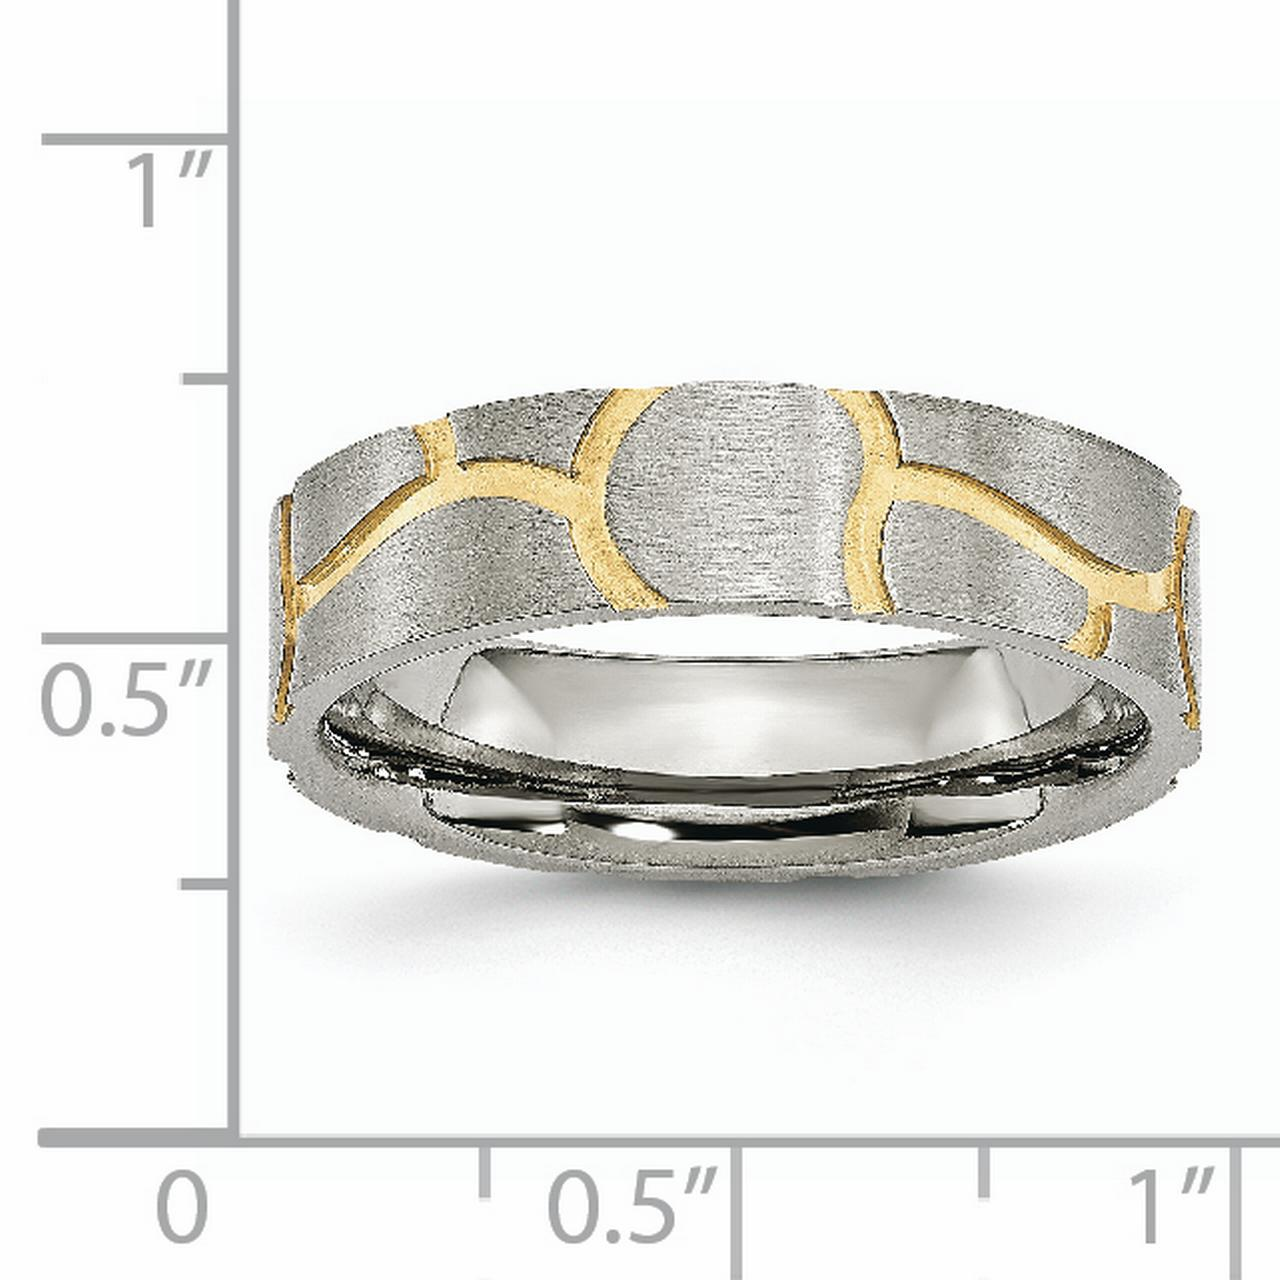 Stainless Steel Grooved Yellow Plated Ladies 6mm Brushed Wedding Ring Band Size 8.00 Fancy Fashion Jewelry Gifts For Women For Her - image 4 de 6